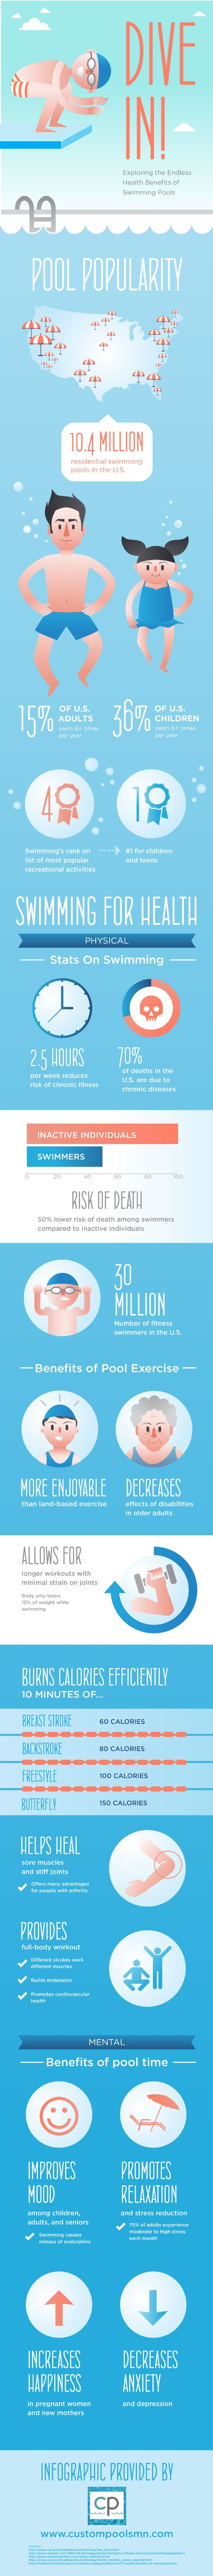 If you swim for just 2.5 hours a week, you can greatly reduce your risk for chronic disease. In fact, active swimmers have a 50% lower risk of death t